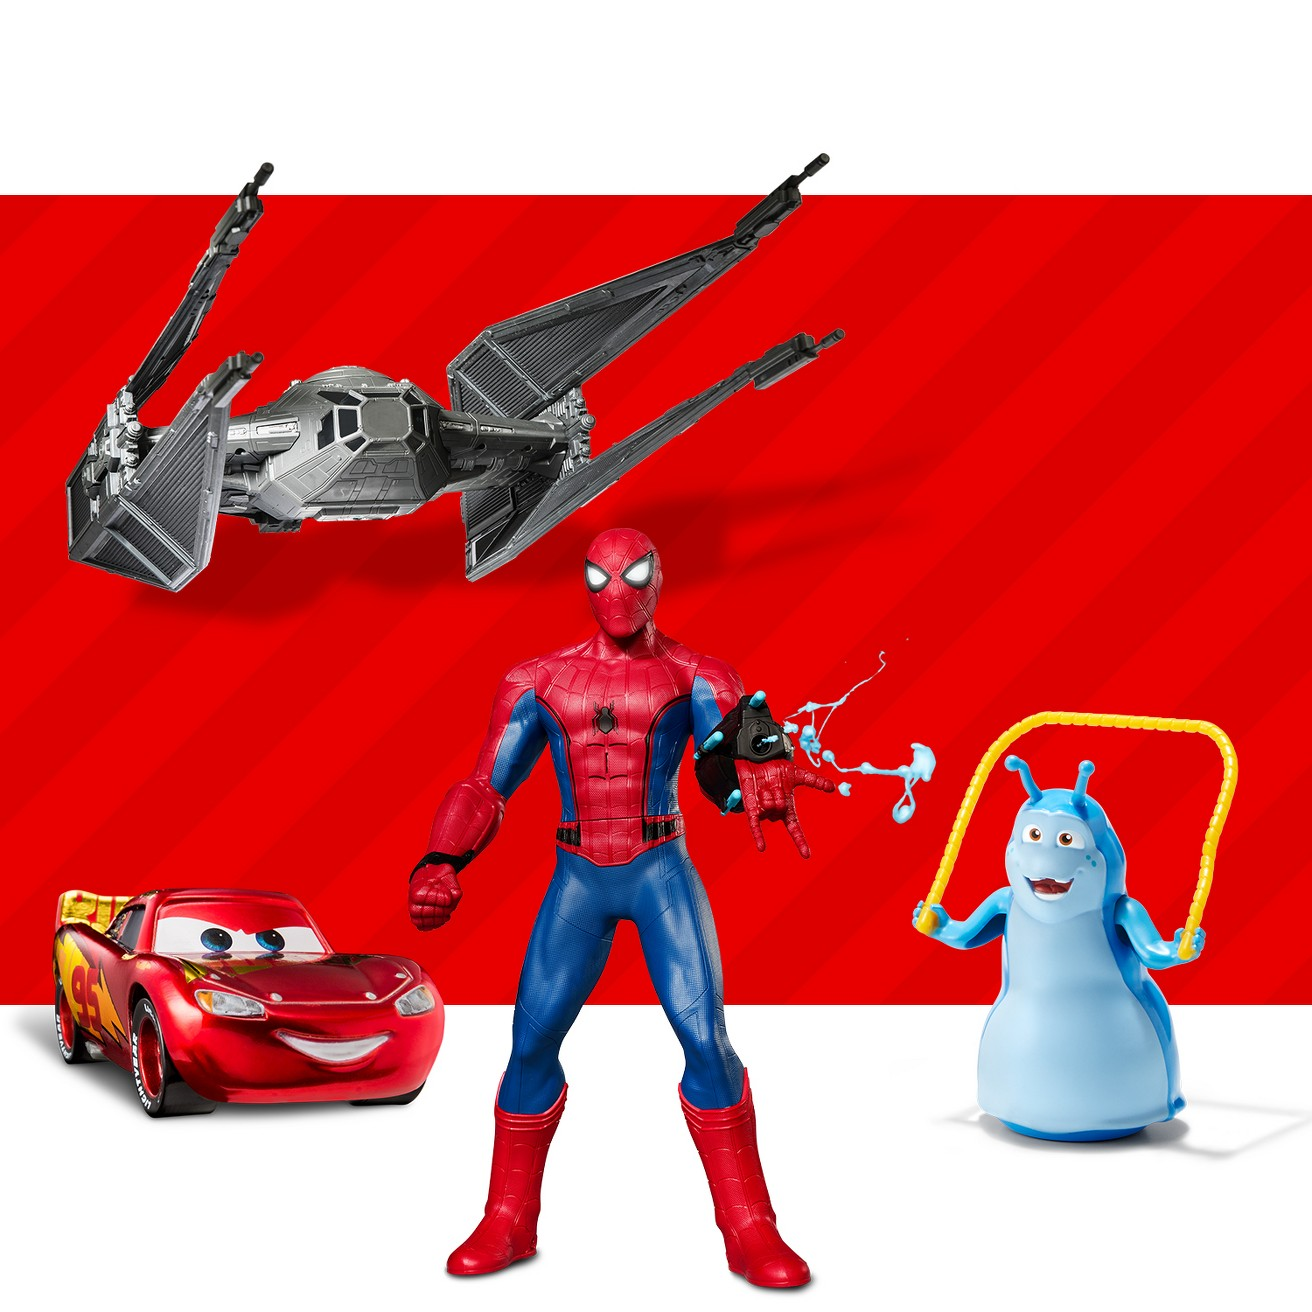 toy construction tools character shop target